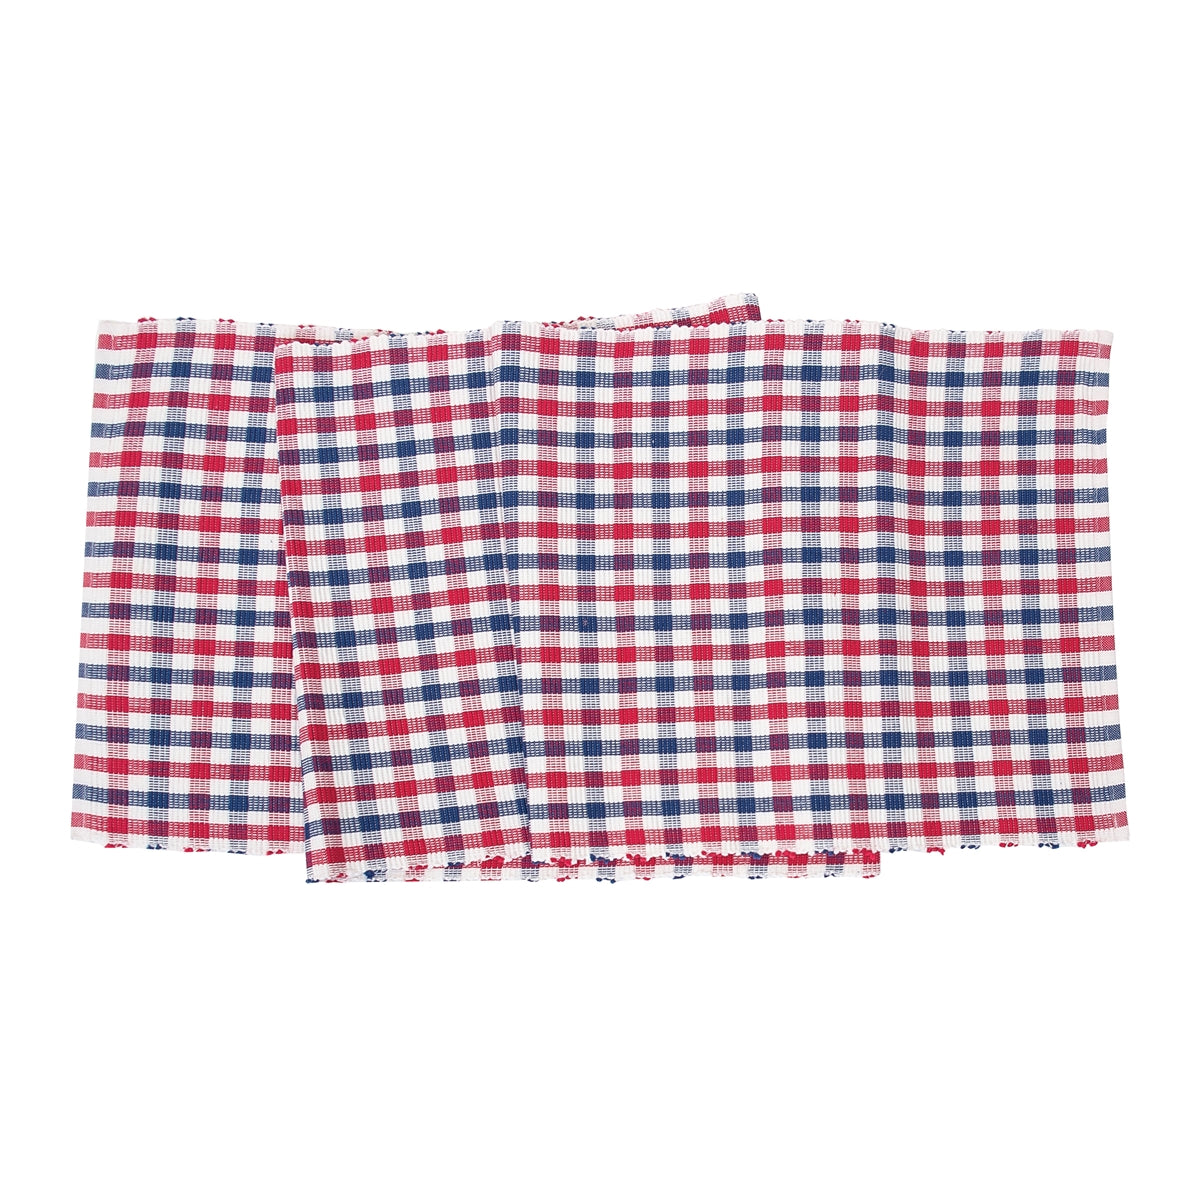 Picnic Plaid Table Runner